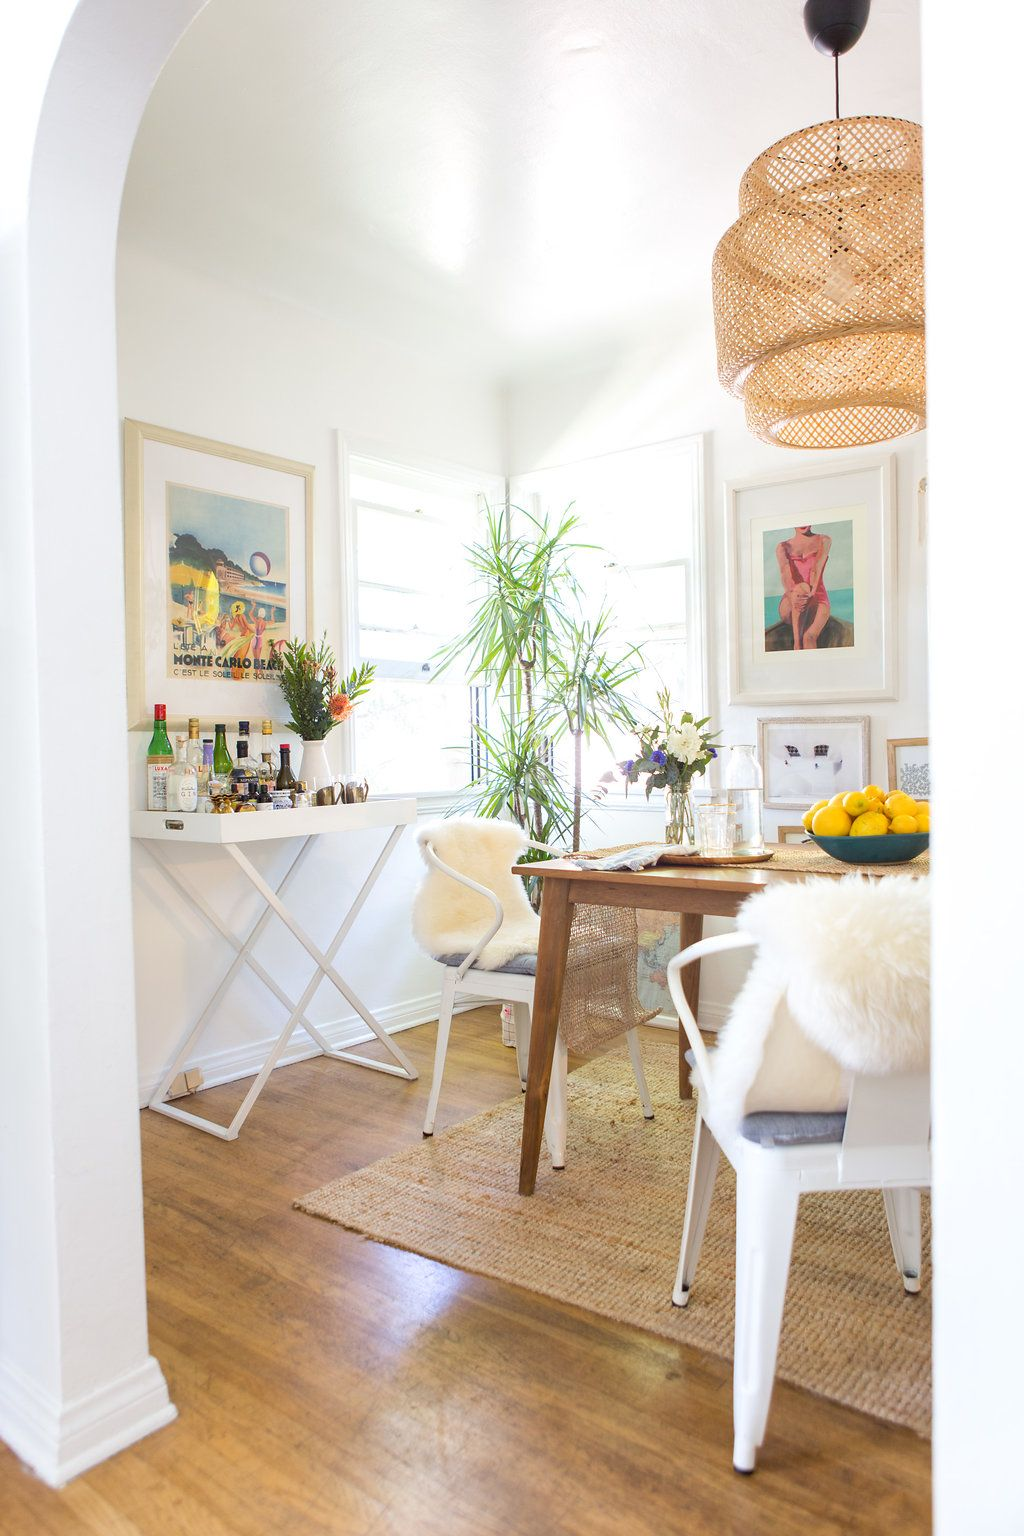 Home Tour On Apartment Therapy Bungalow Homes Beach Bungalow